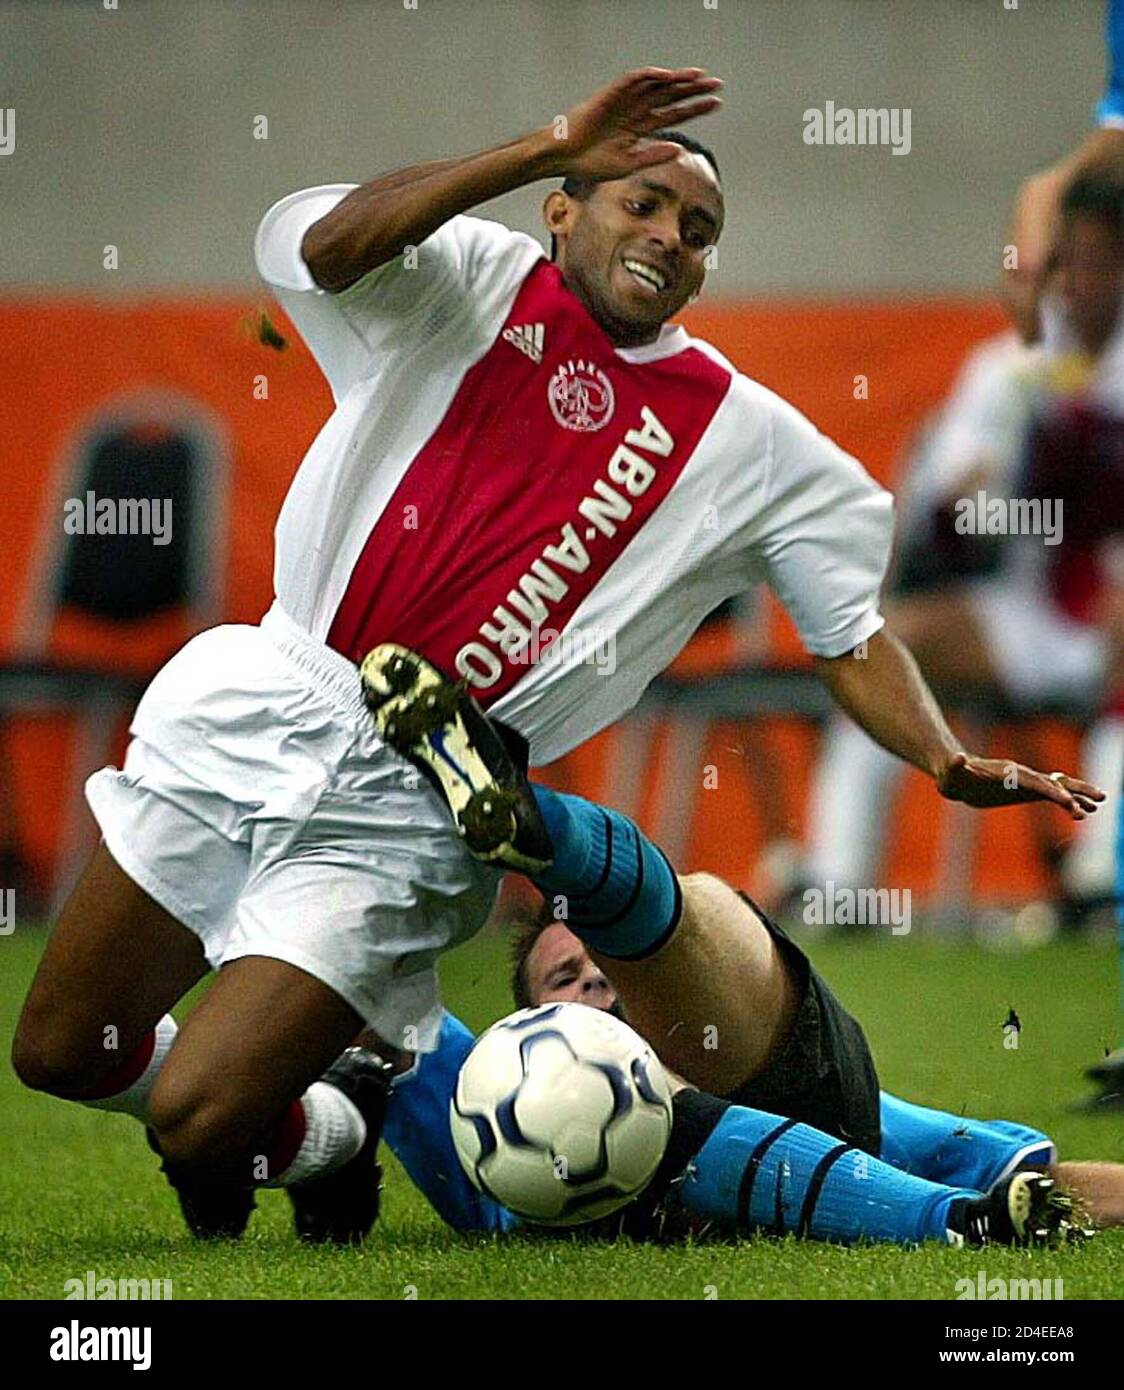 Ajax Player Wamberto Falls As He Is Tackled By Andre Ooijer Of Psv In Their Dutch